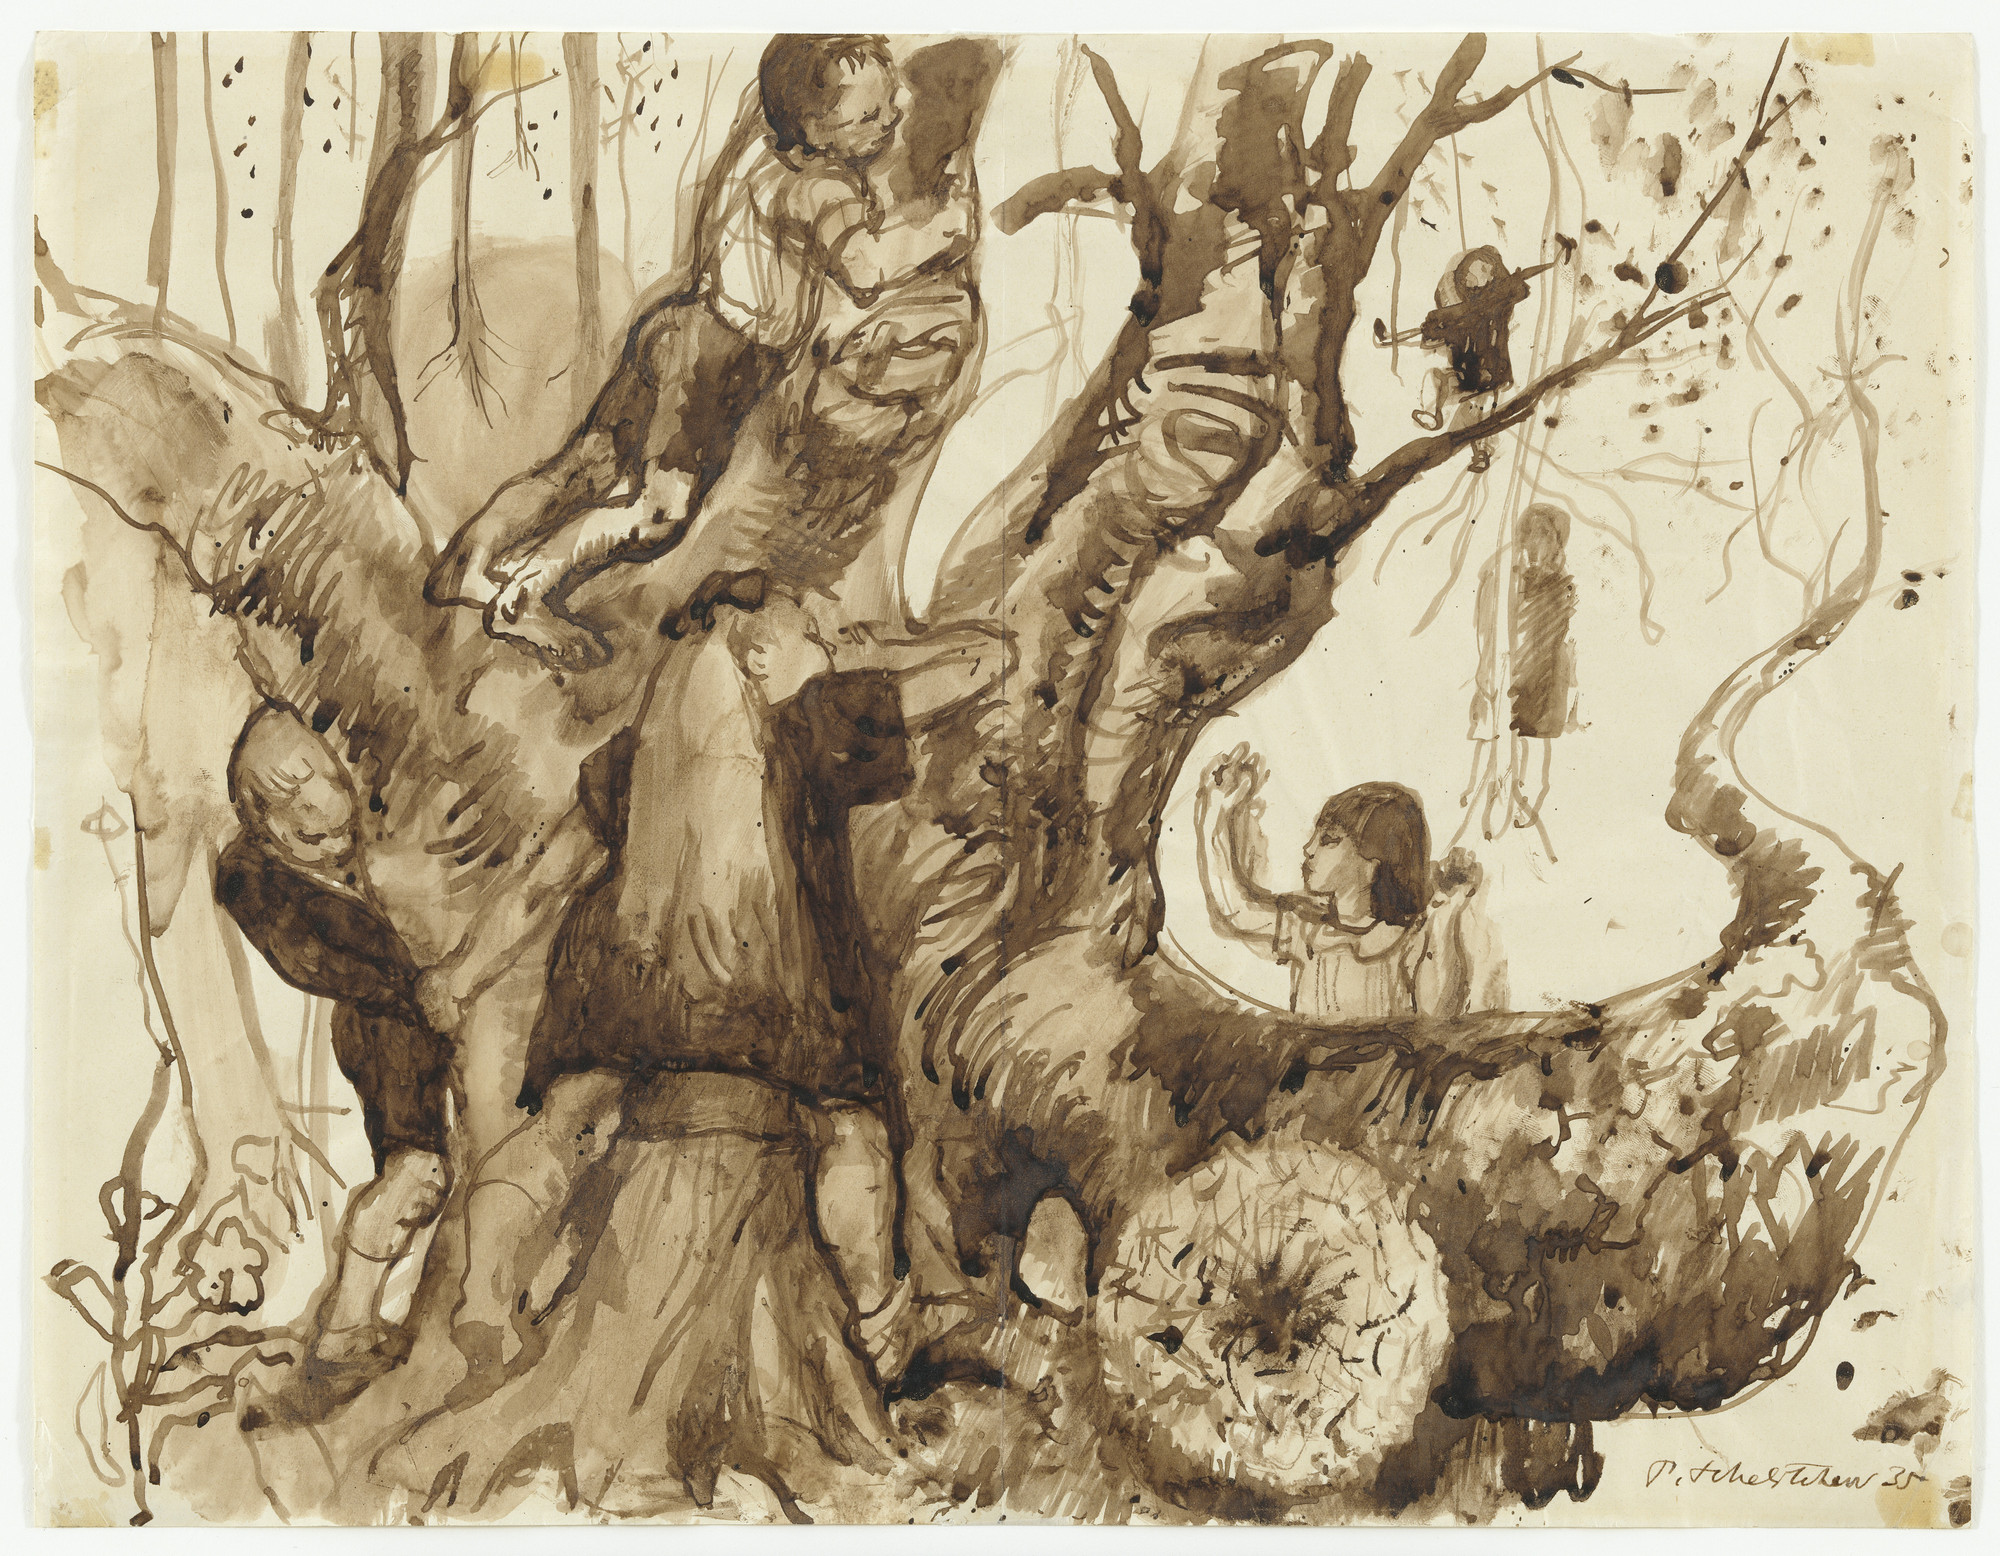 Pavel Tchelitchew. Tree with Children (Study for Hide-and-Seek). 1935